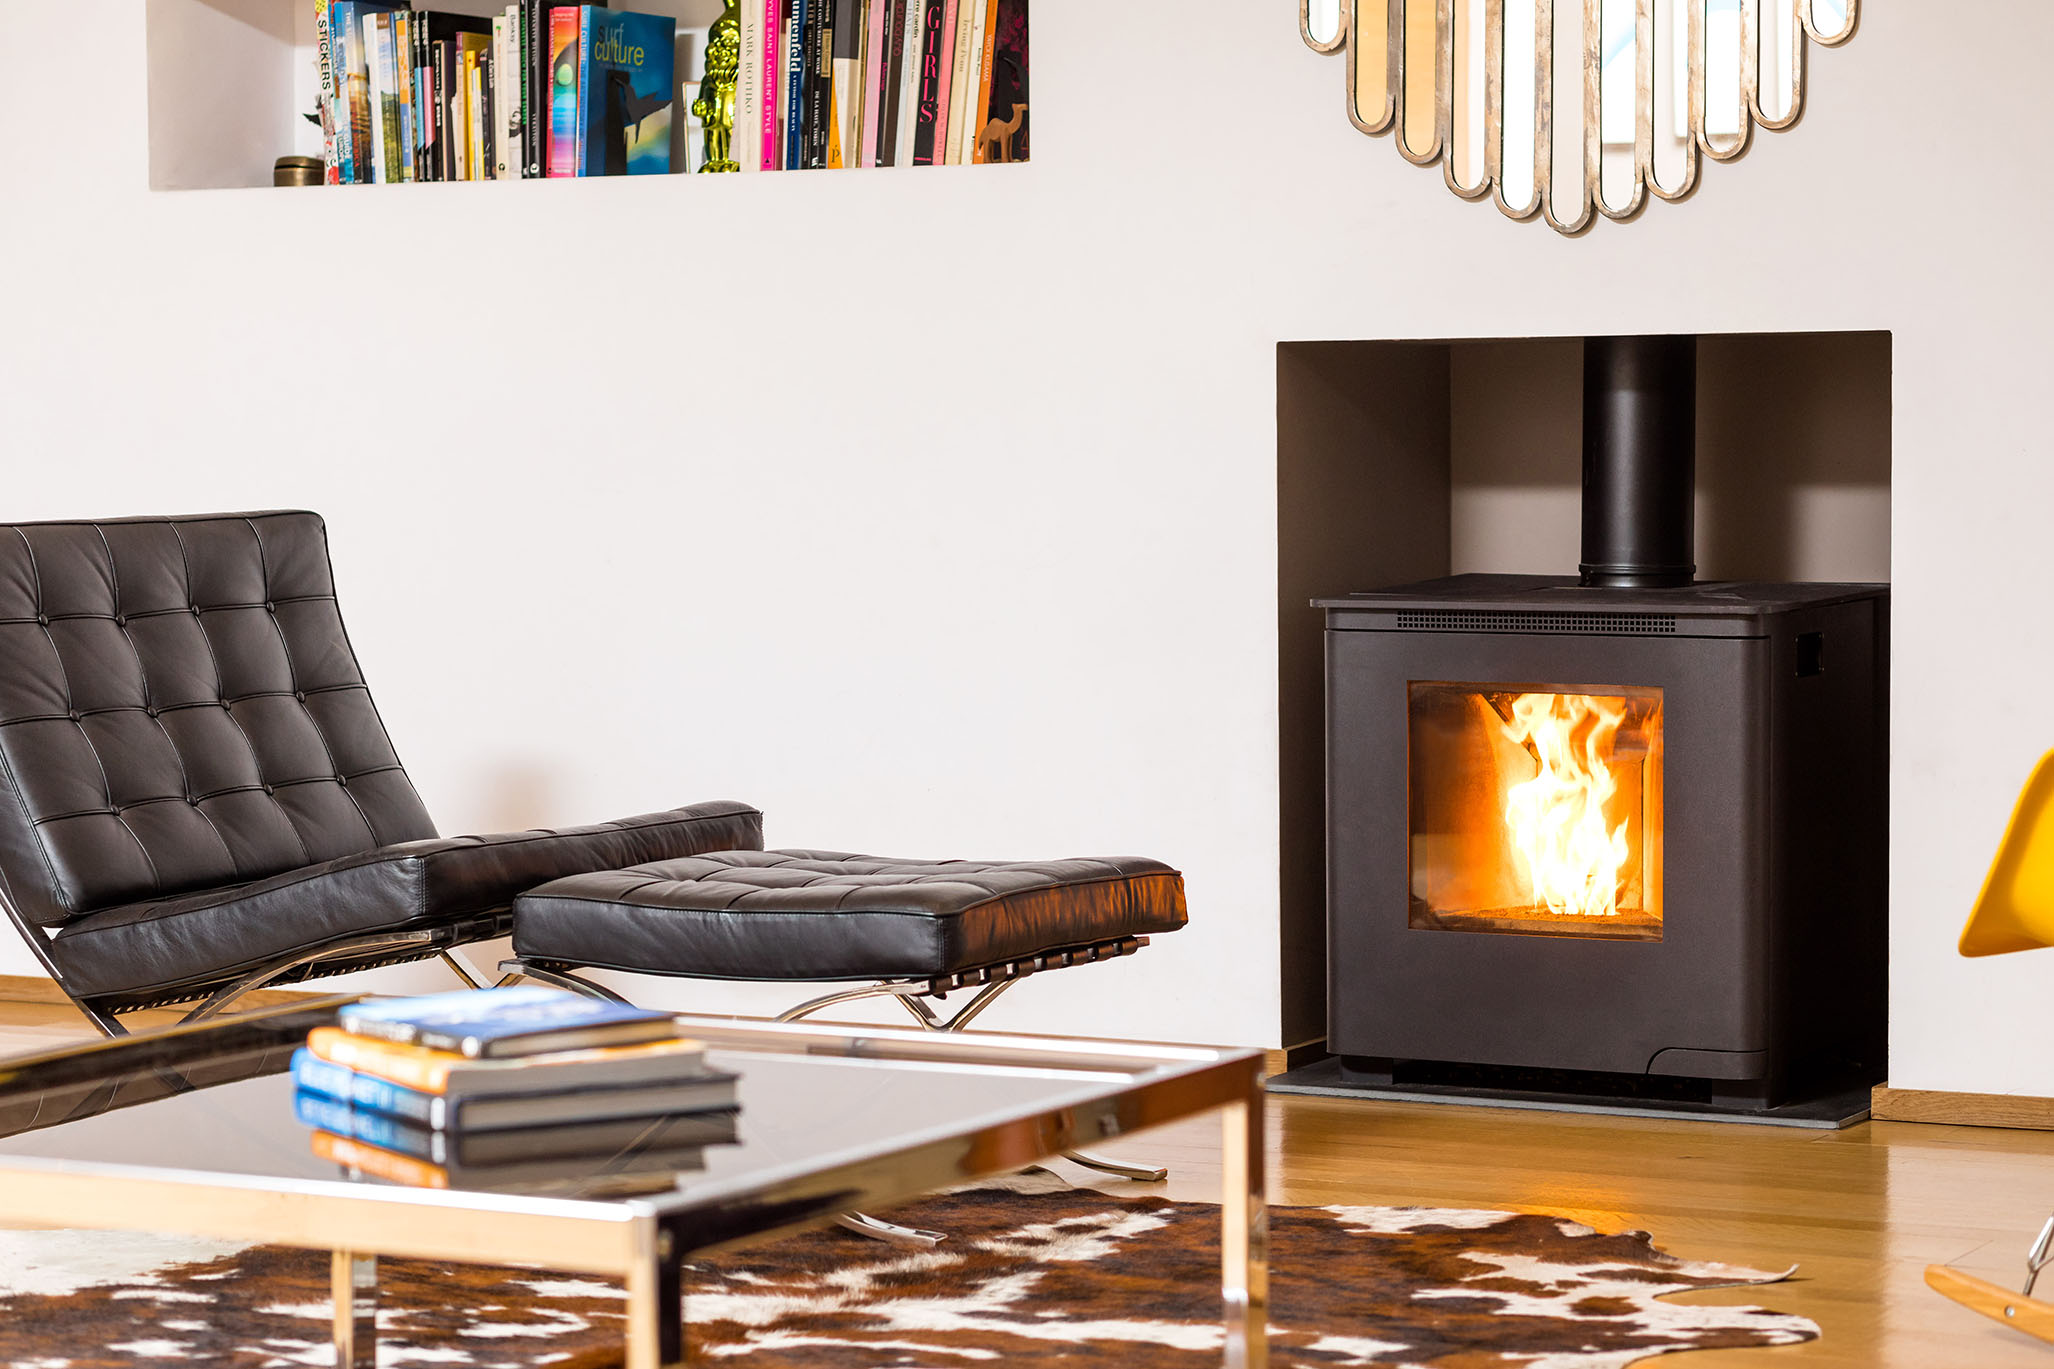 commercial_photographer_cardiff_island_stoves1.jpg